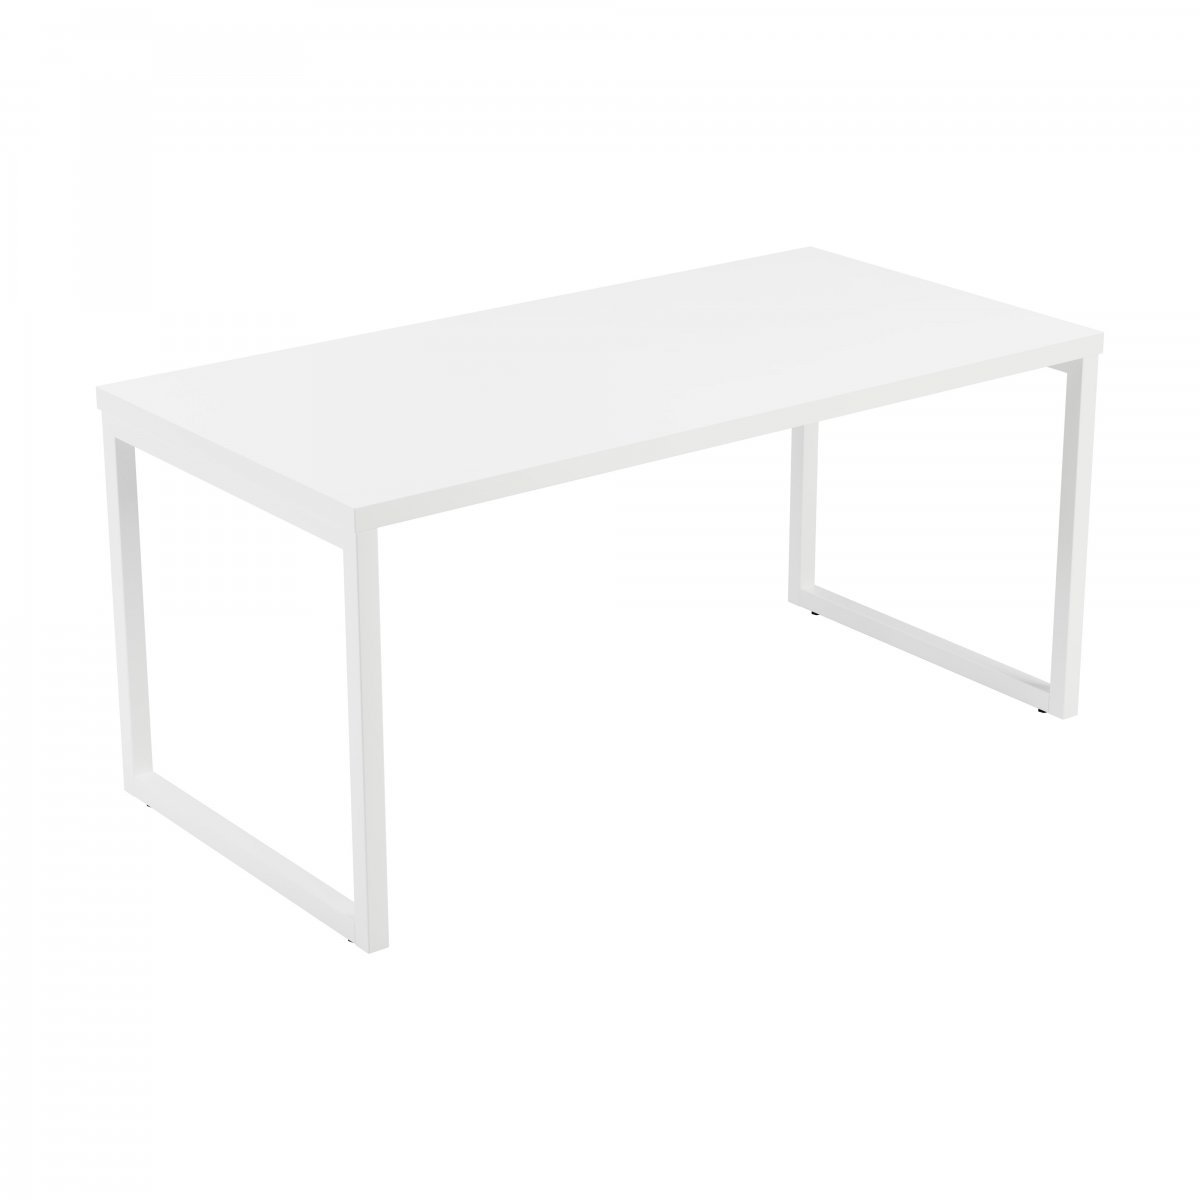 Picnic Bench Low Table White 36mm White Top